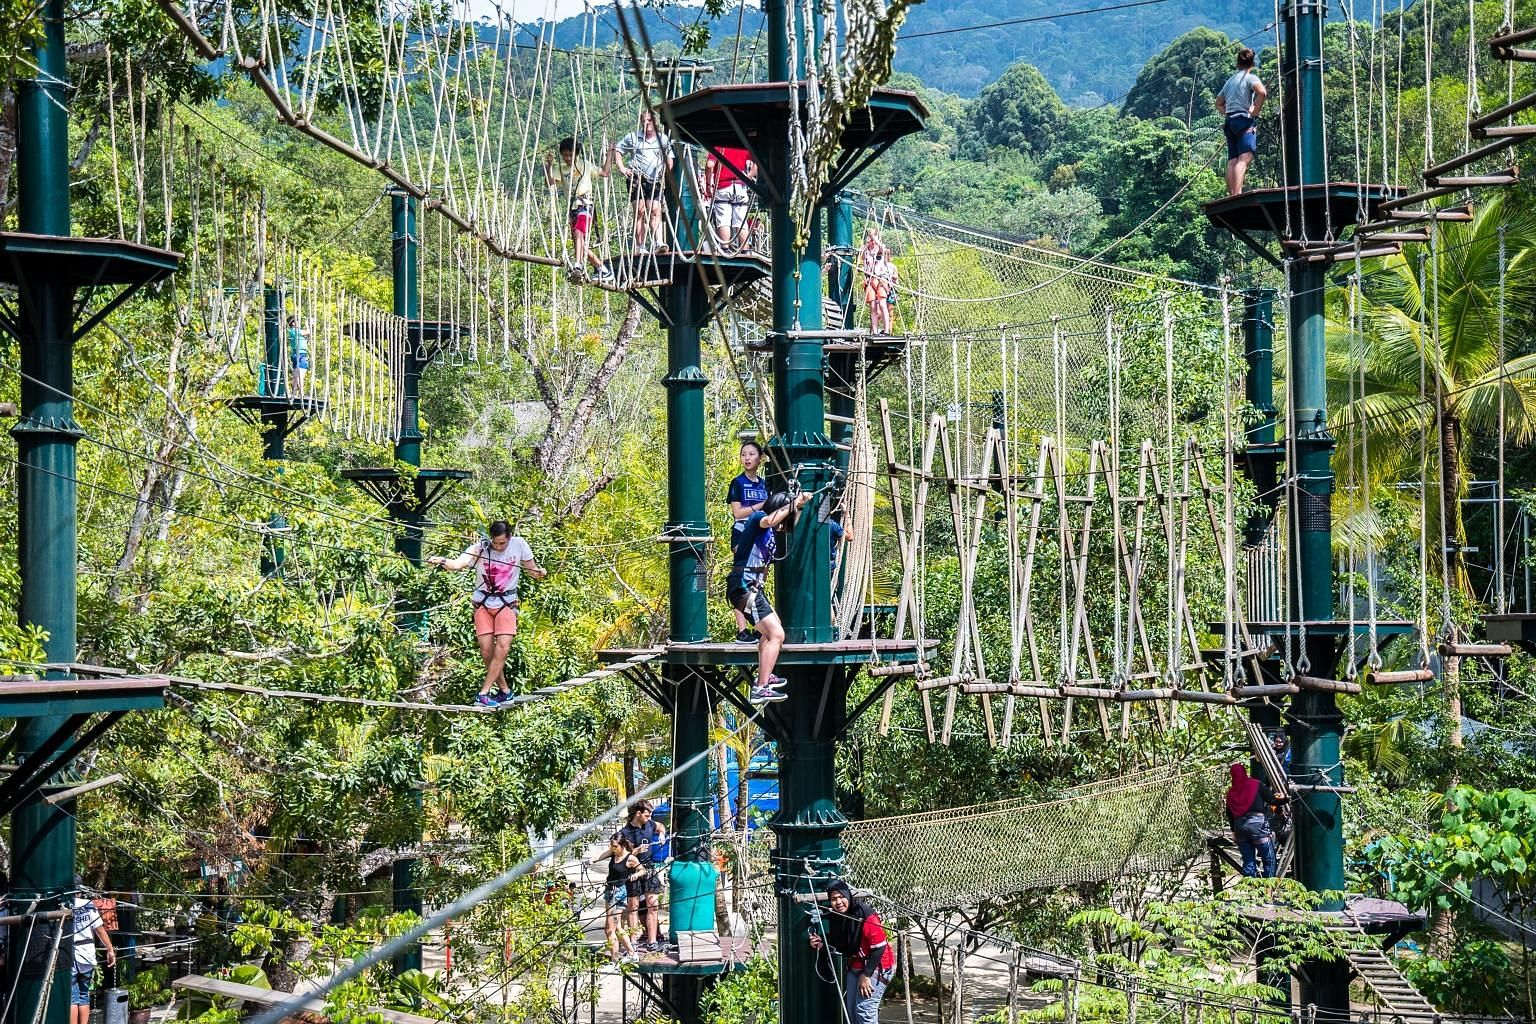 Sim Leisure Group's Escape Adventureplay is an outdoor adventure theme park in Penang comprising eco-friendly features and design elements reminiscent of traditional villages in Malaysia. The listed theme park developer and operator's founder and chi